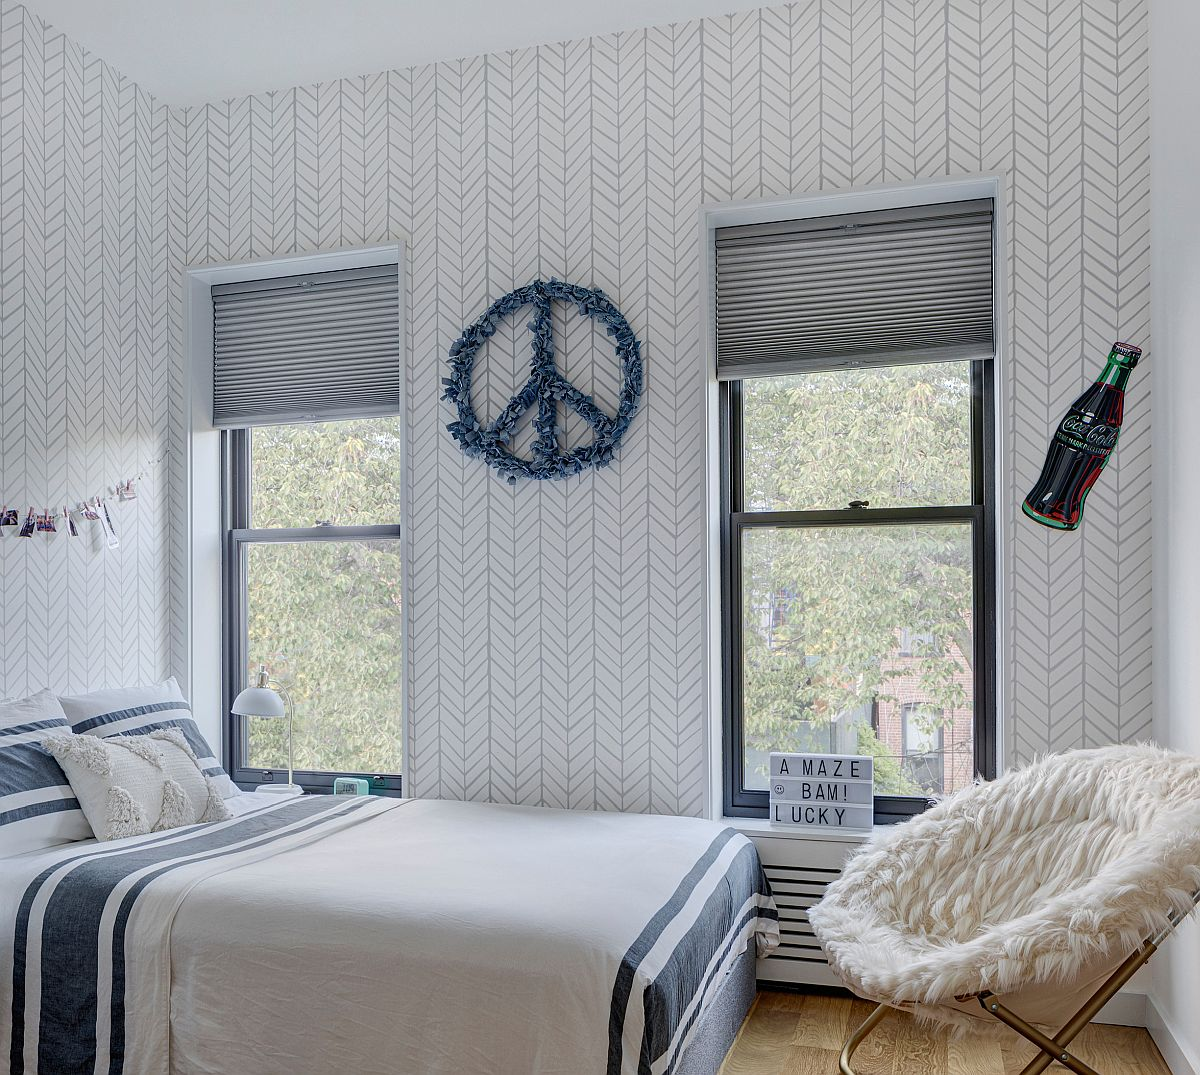 Blue and white teen bedroom that is gender neutral features pattern-filled walls